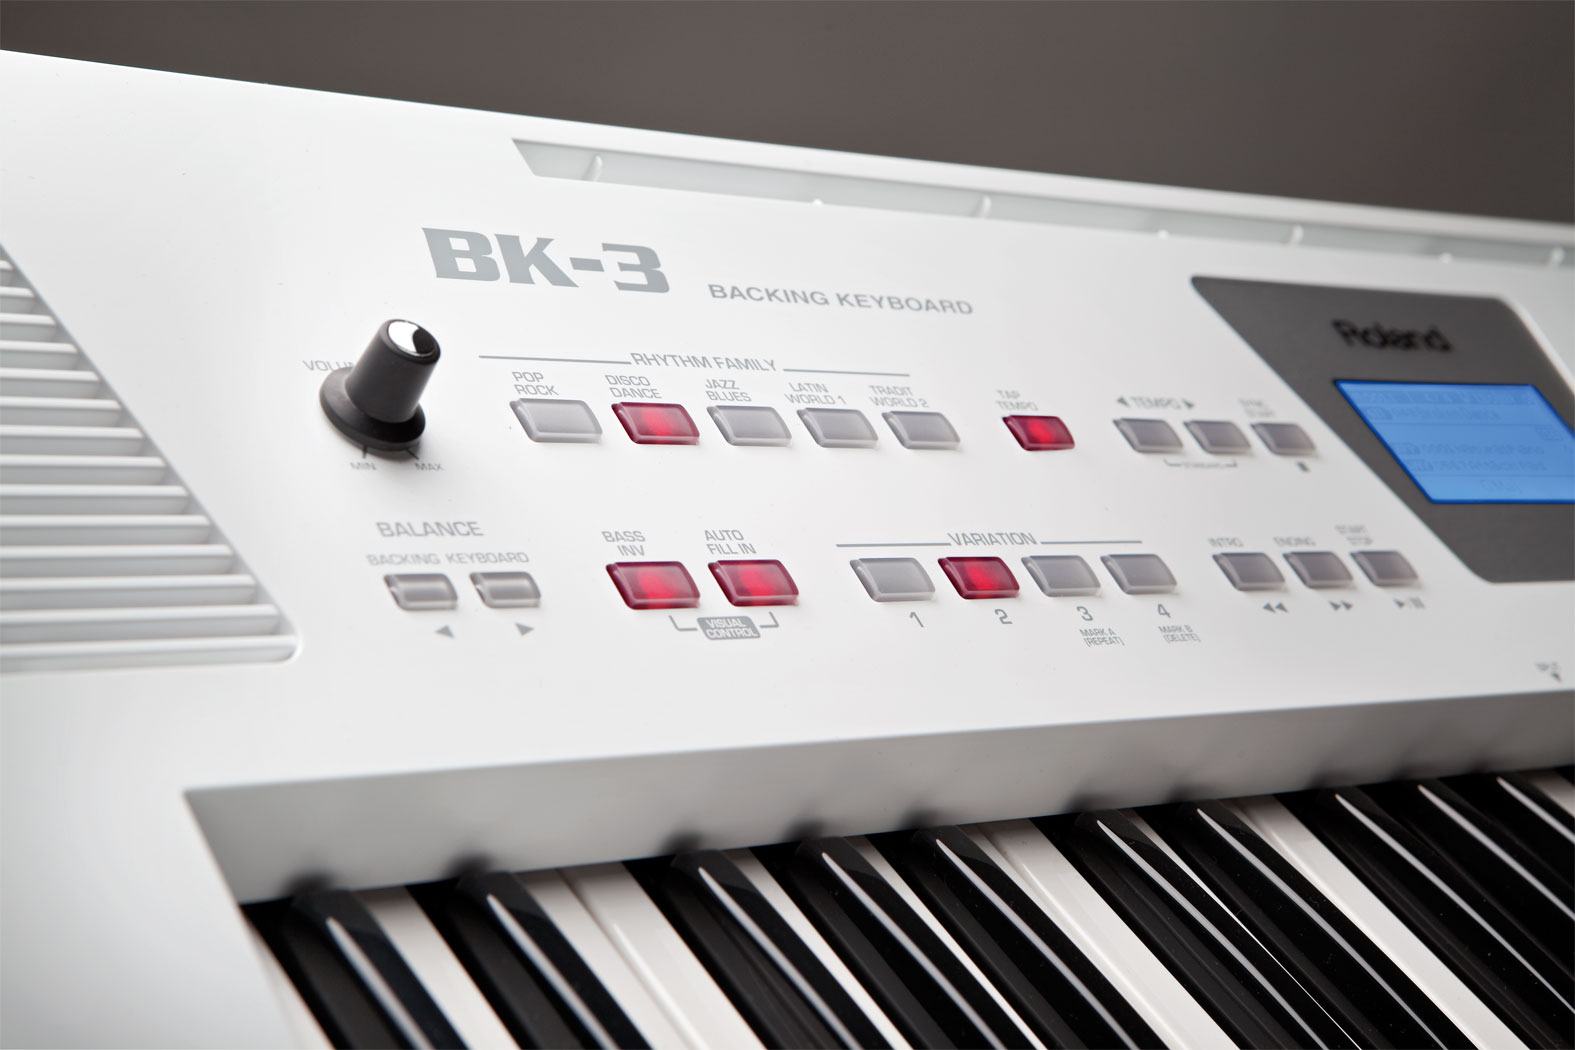 Roland India - BK-3 | Backing Keyboard